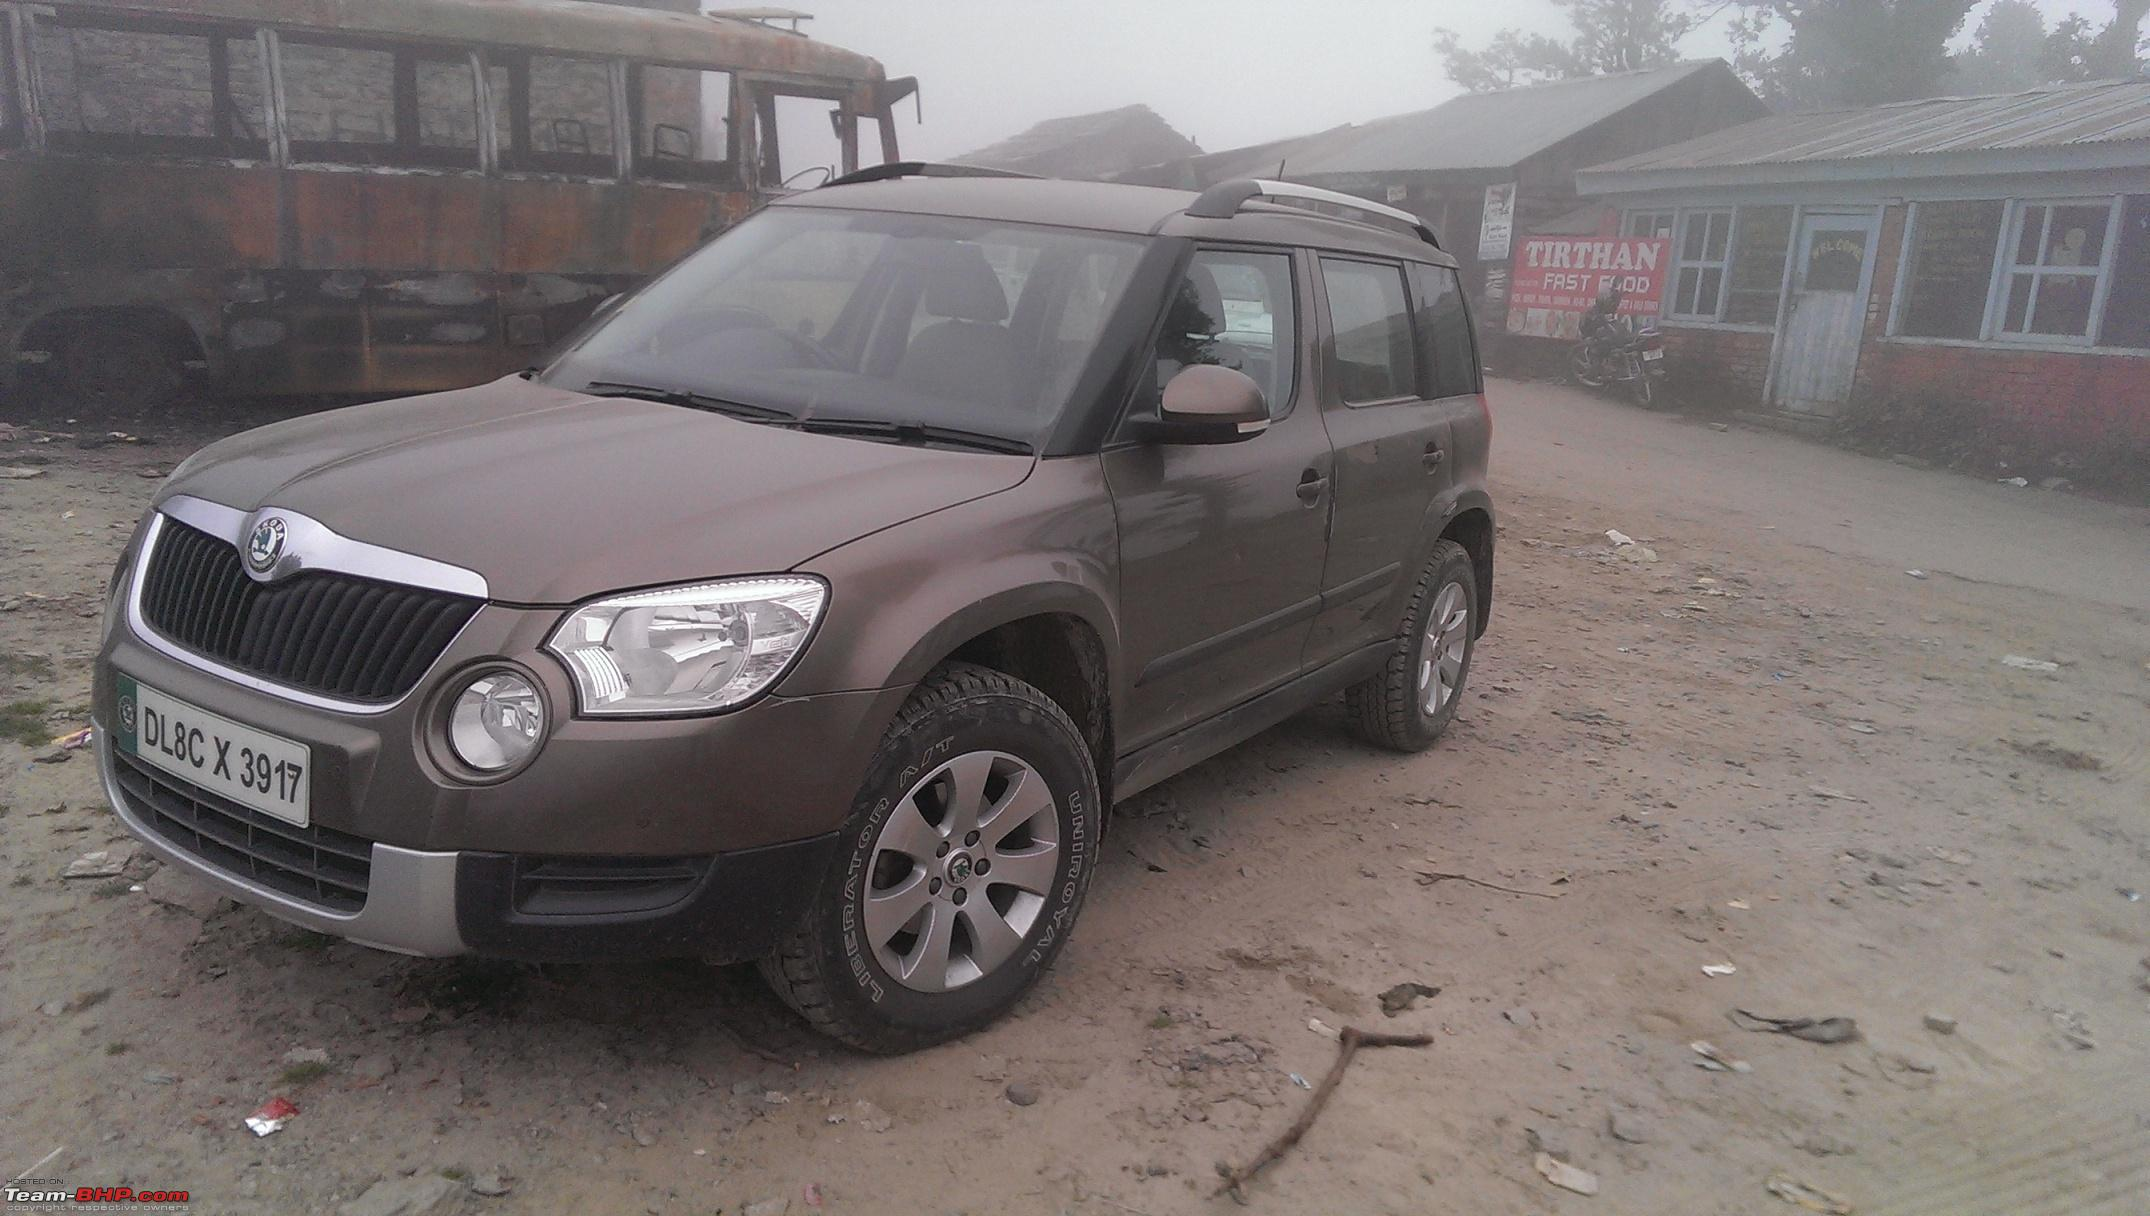 skoda yeti review price pictures page 120 team bhp. Black Bedroom Furniture Sets. Home Design Ideas